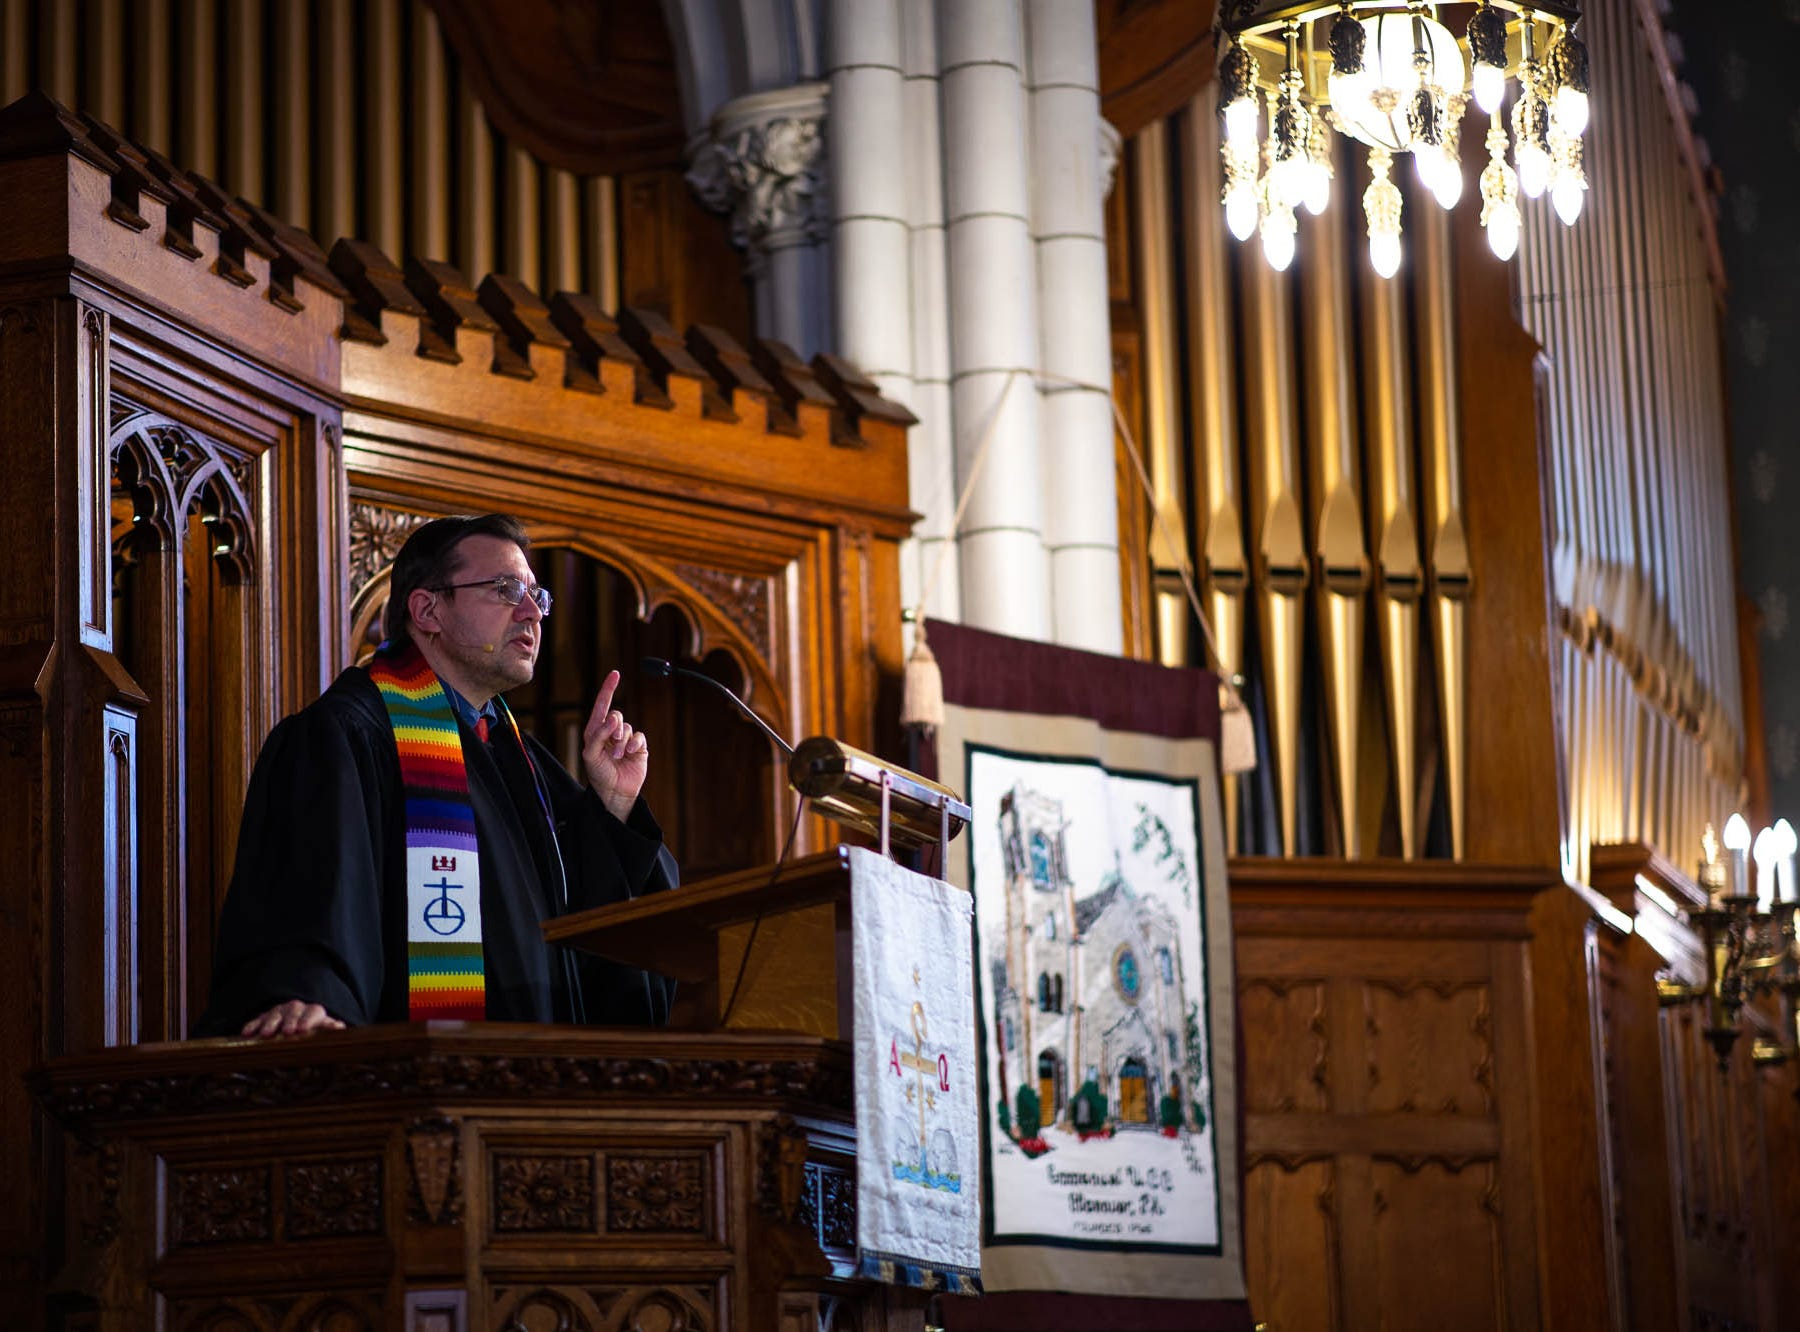 Reverend Russell Clark speaks during a diversity service at the Emmanuel United Church of Christ, Sunday, April 7, 2019, in Hanover. Reverend Clark is the first openly gay pastor at the church.